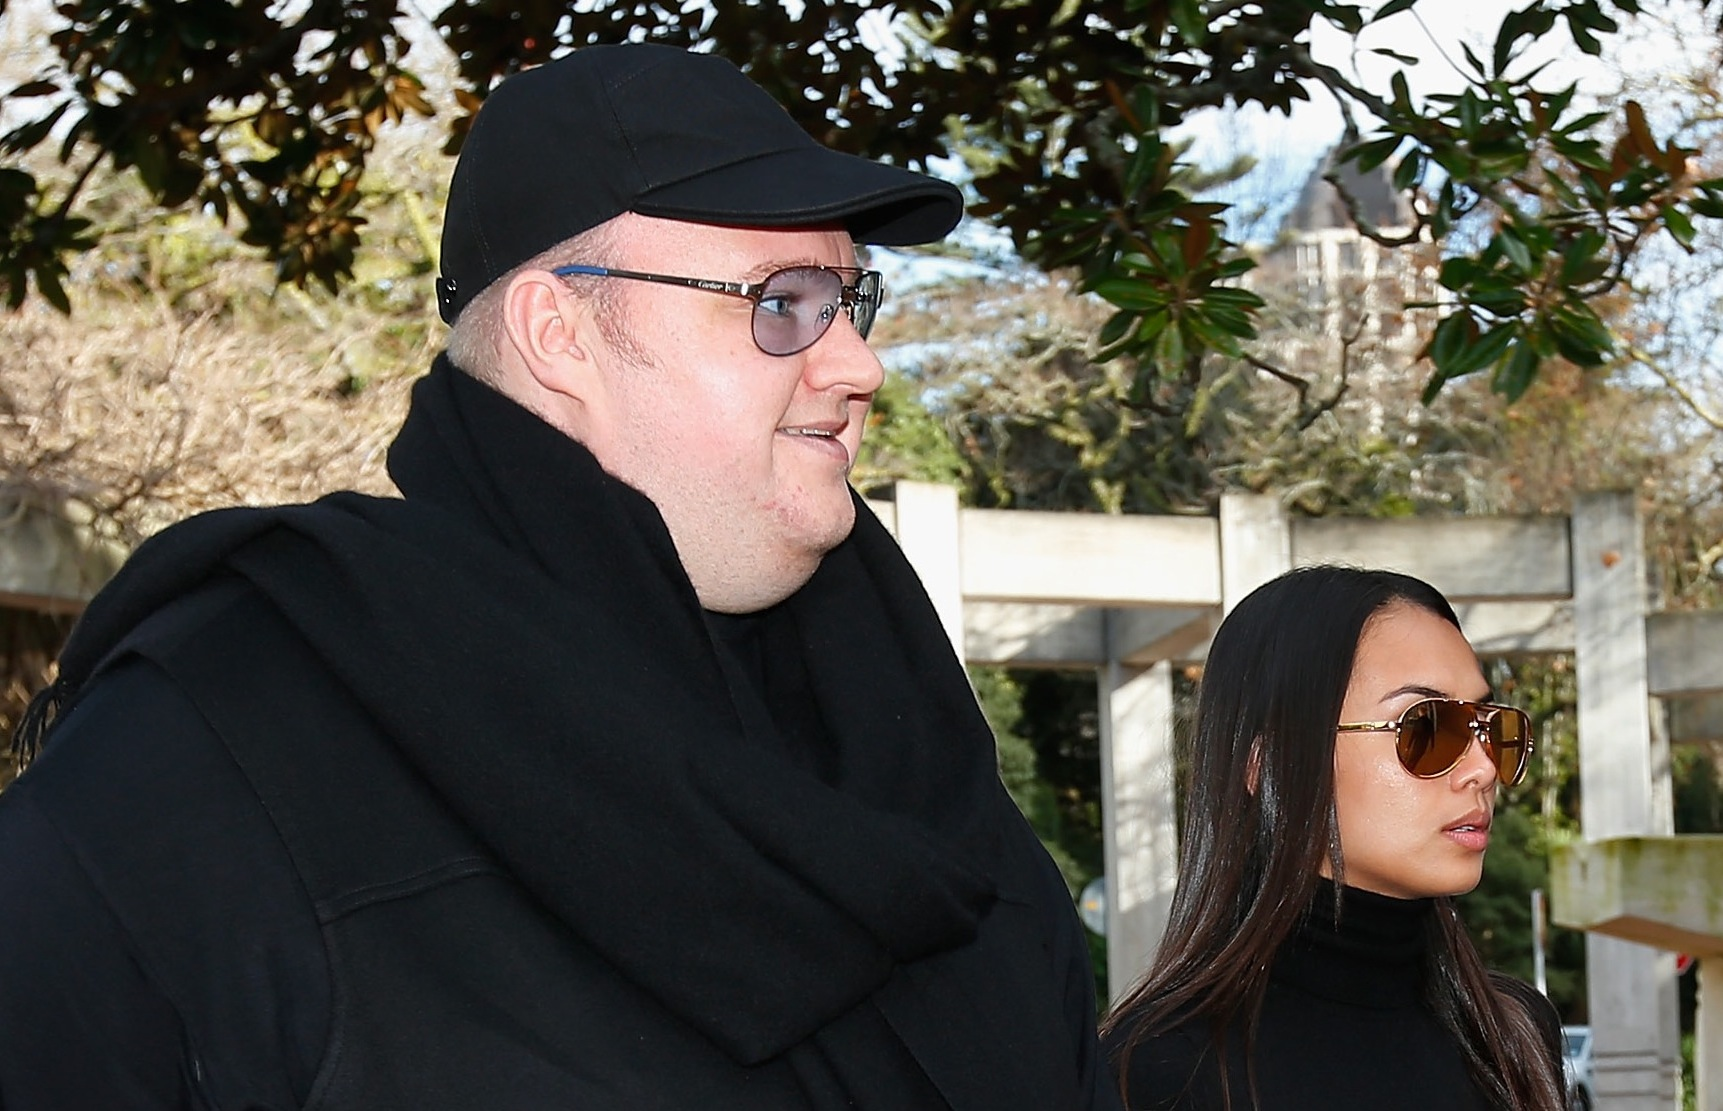 Kim Dotcom announces Me.ga, the new domain for the upcoming Megaupload reboot